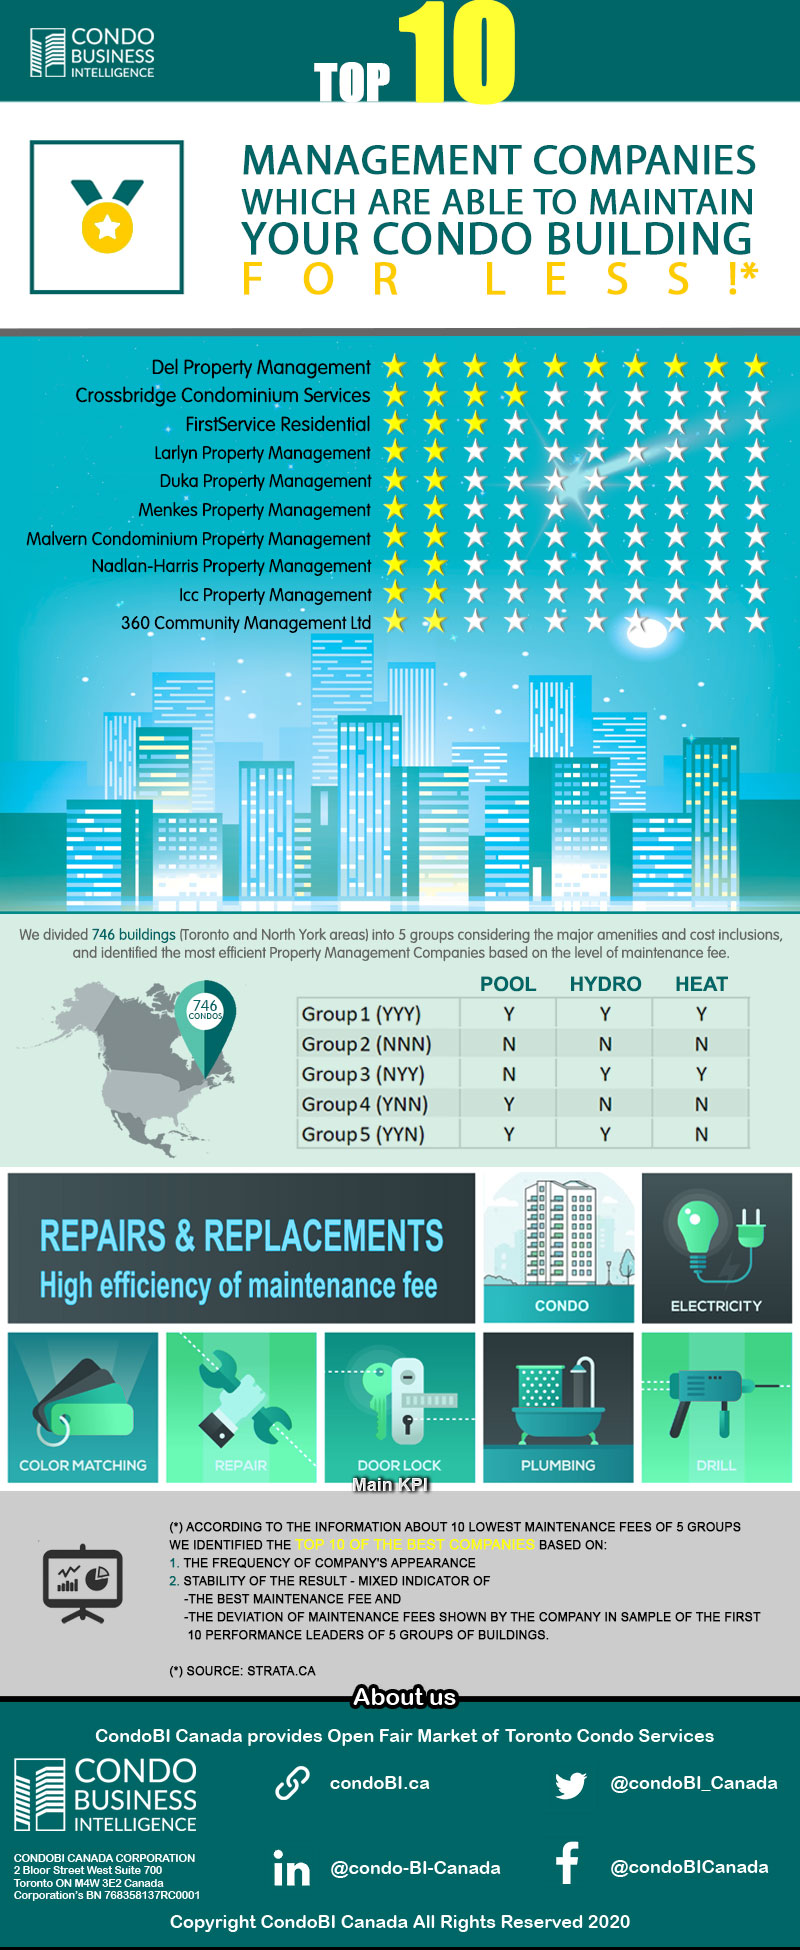 infographic-Top-10-Management-Company-which-is-able-to-maintain-your-Condo-building-for-less